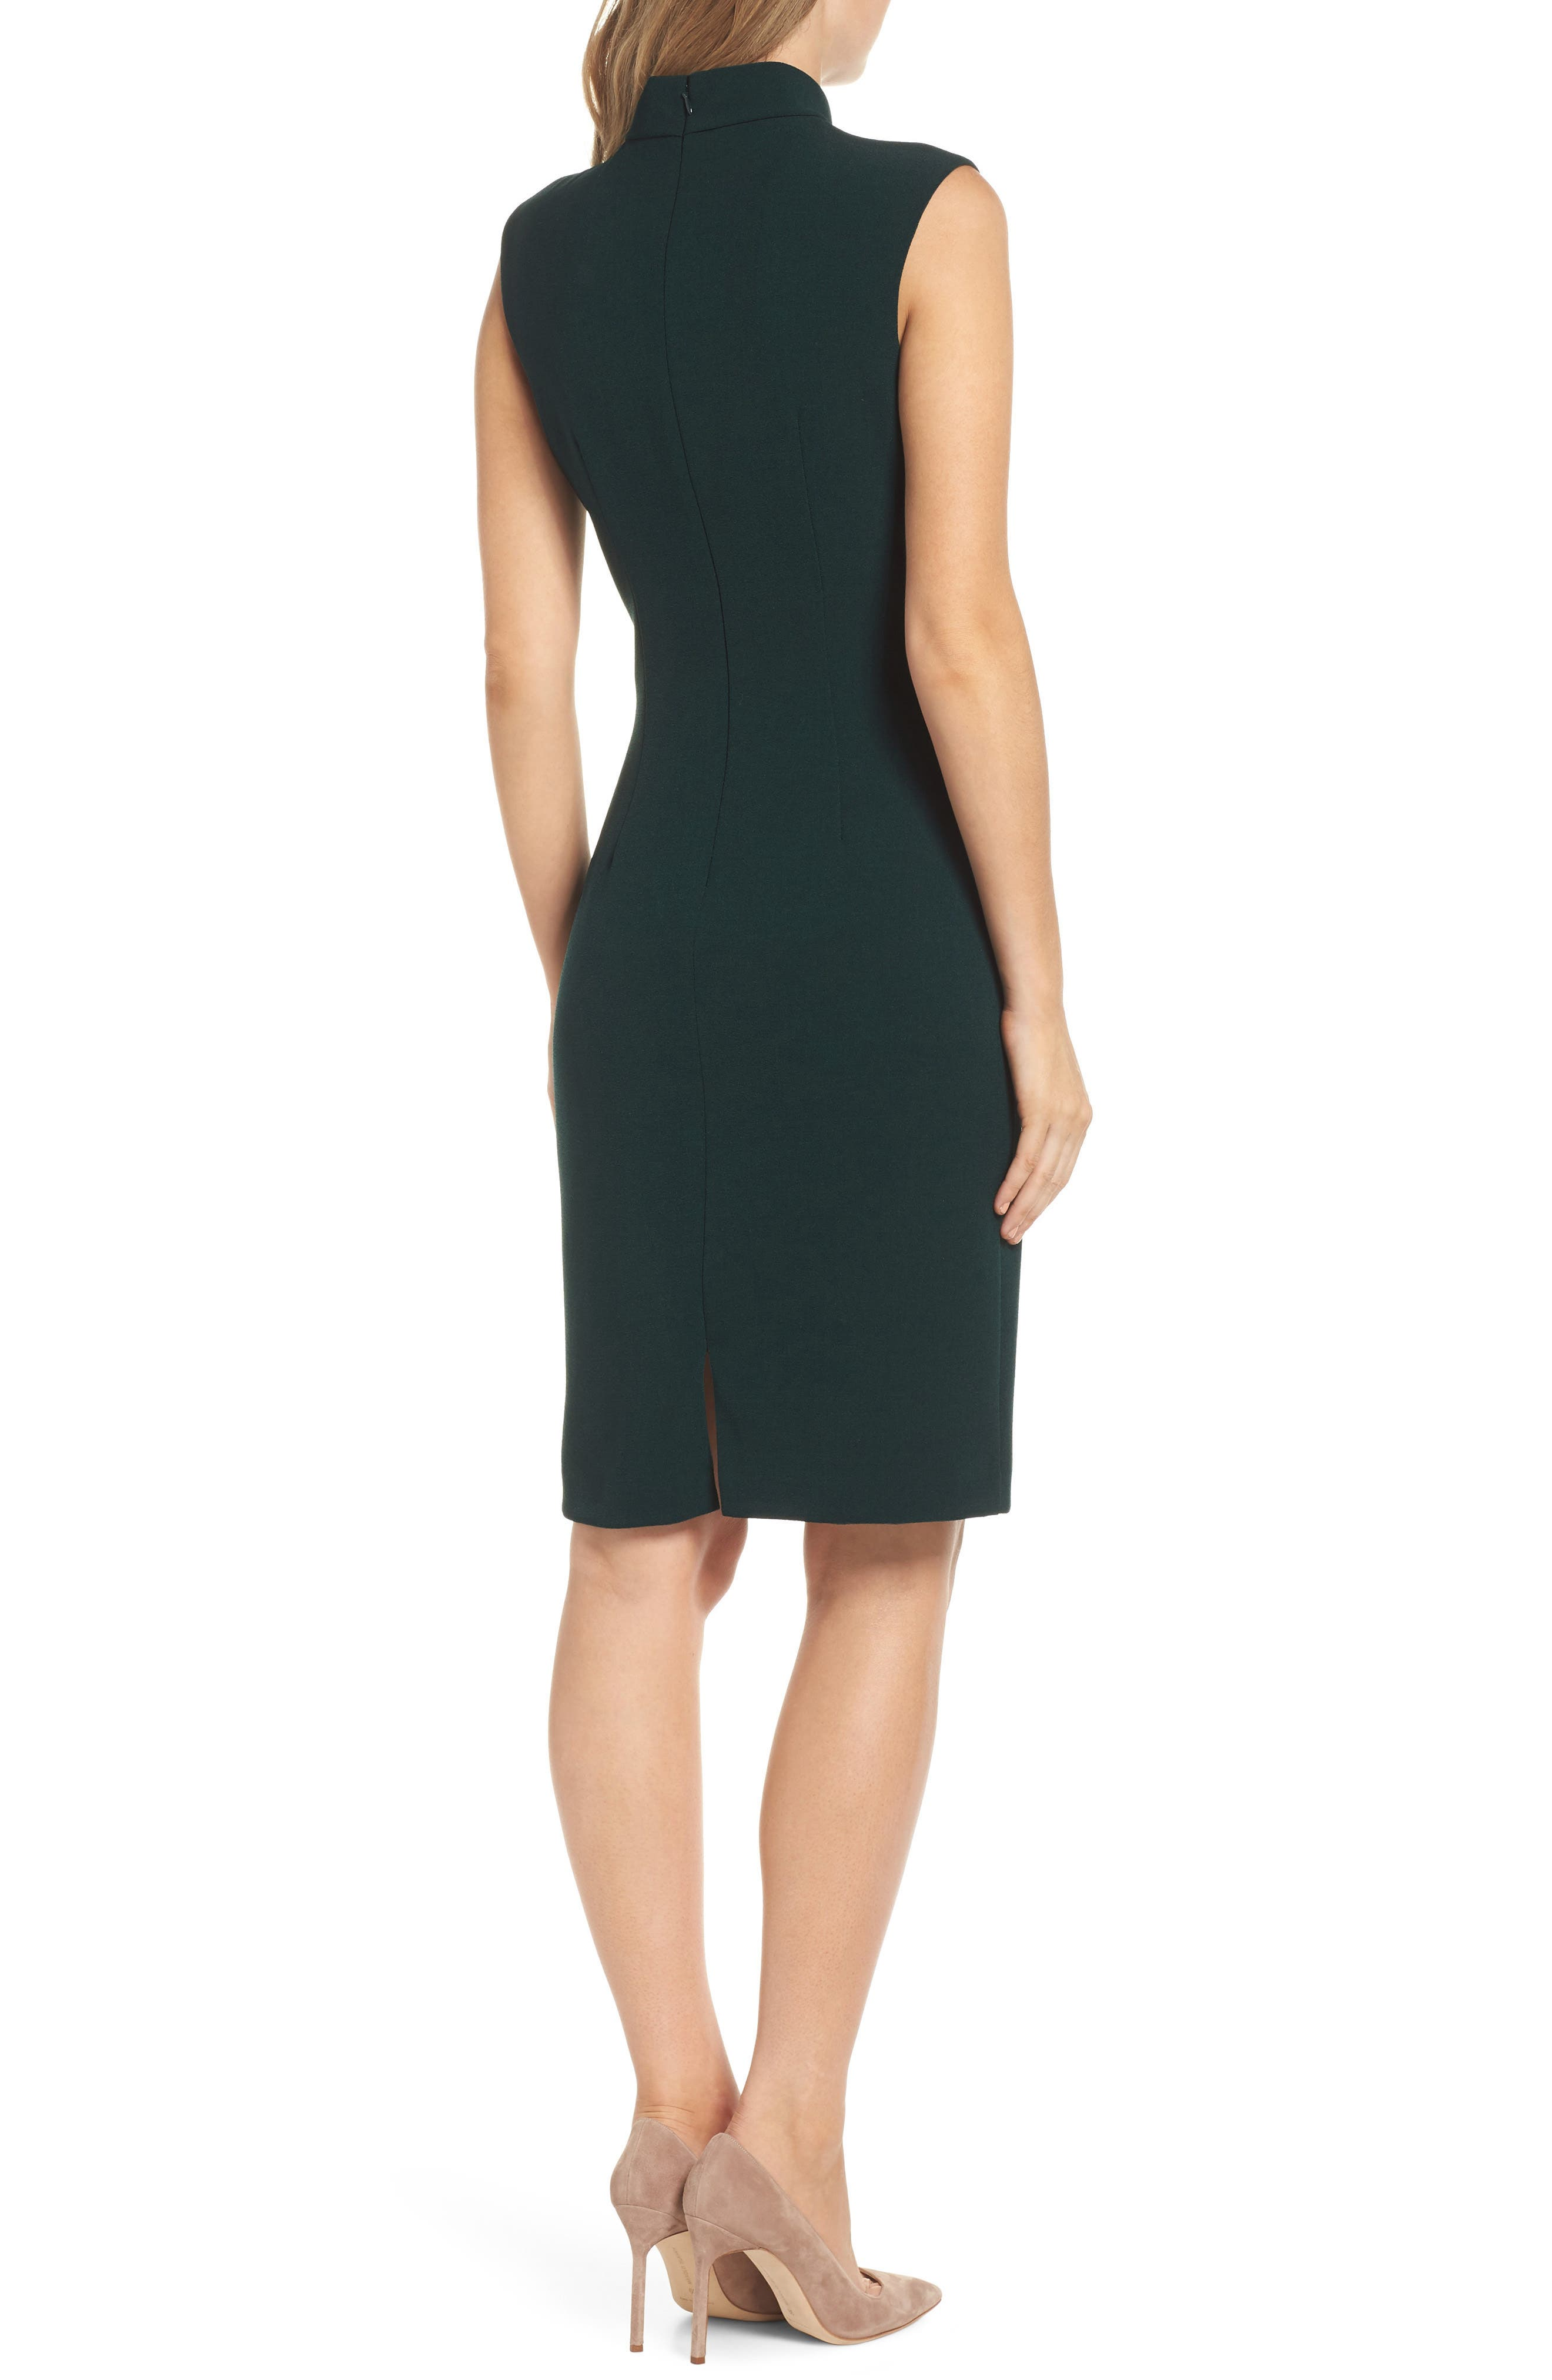 HARPER ROSE,                             Tie Neck Sheath Dress,                             Alternate thumbnail 2, color,                             302